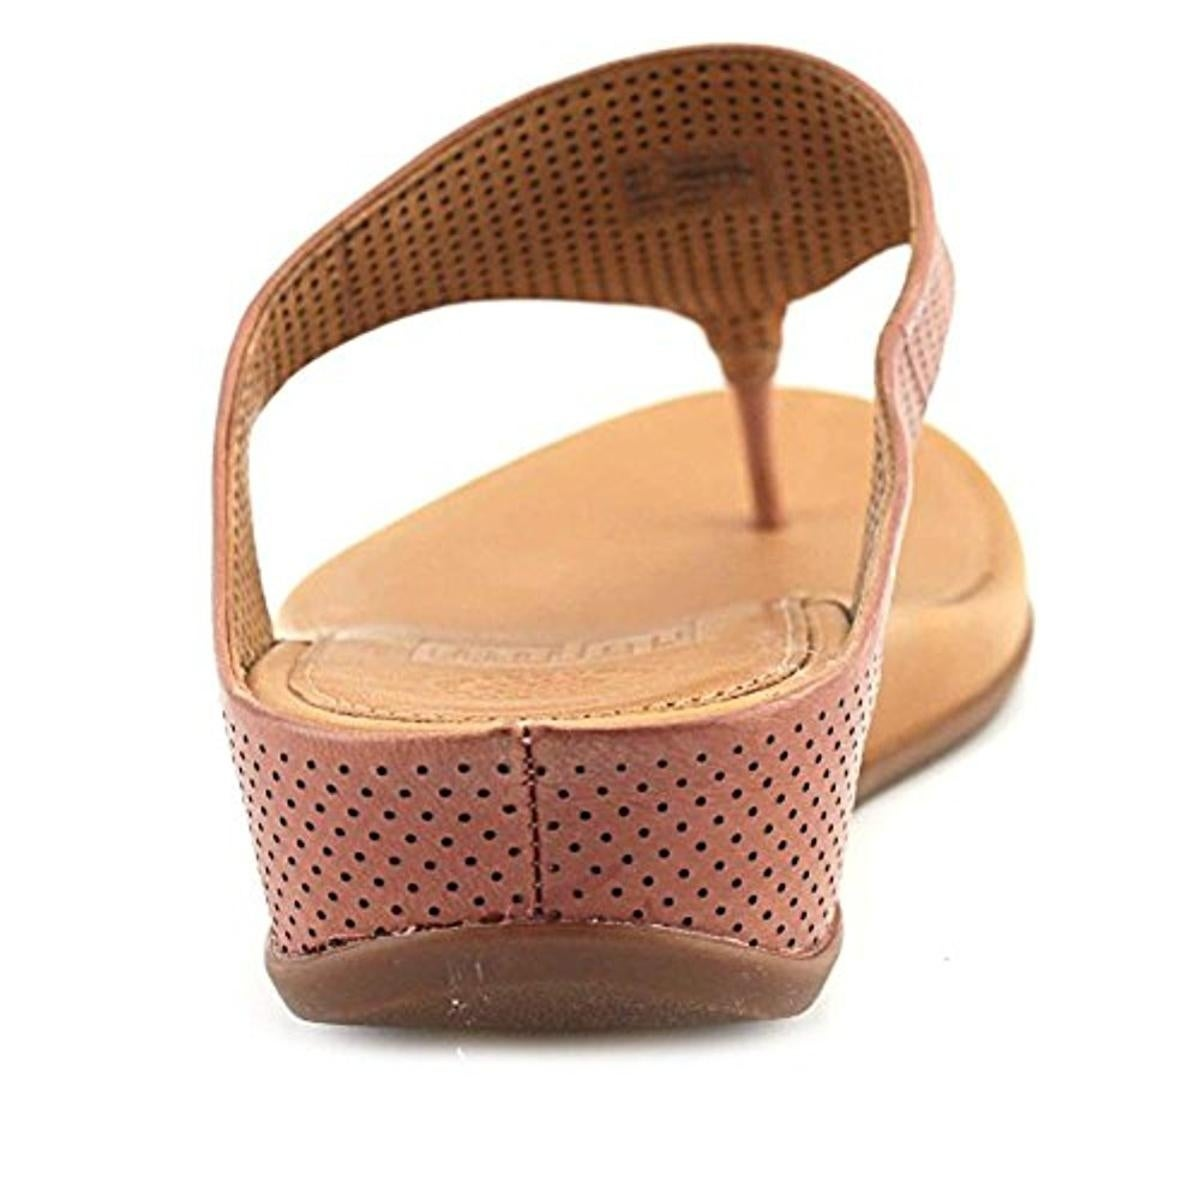 c68dc8d2ef37 Shop Fitflop Womens Banda Thong Sandals Open Toe Cushioned - Free Shipping  Today - Overstock - 21457463